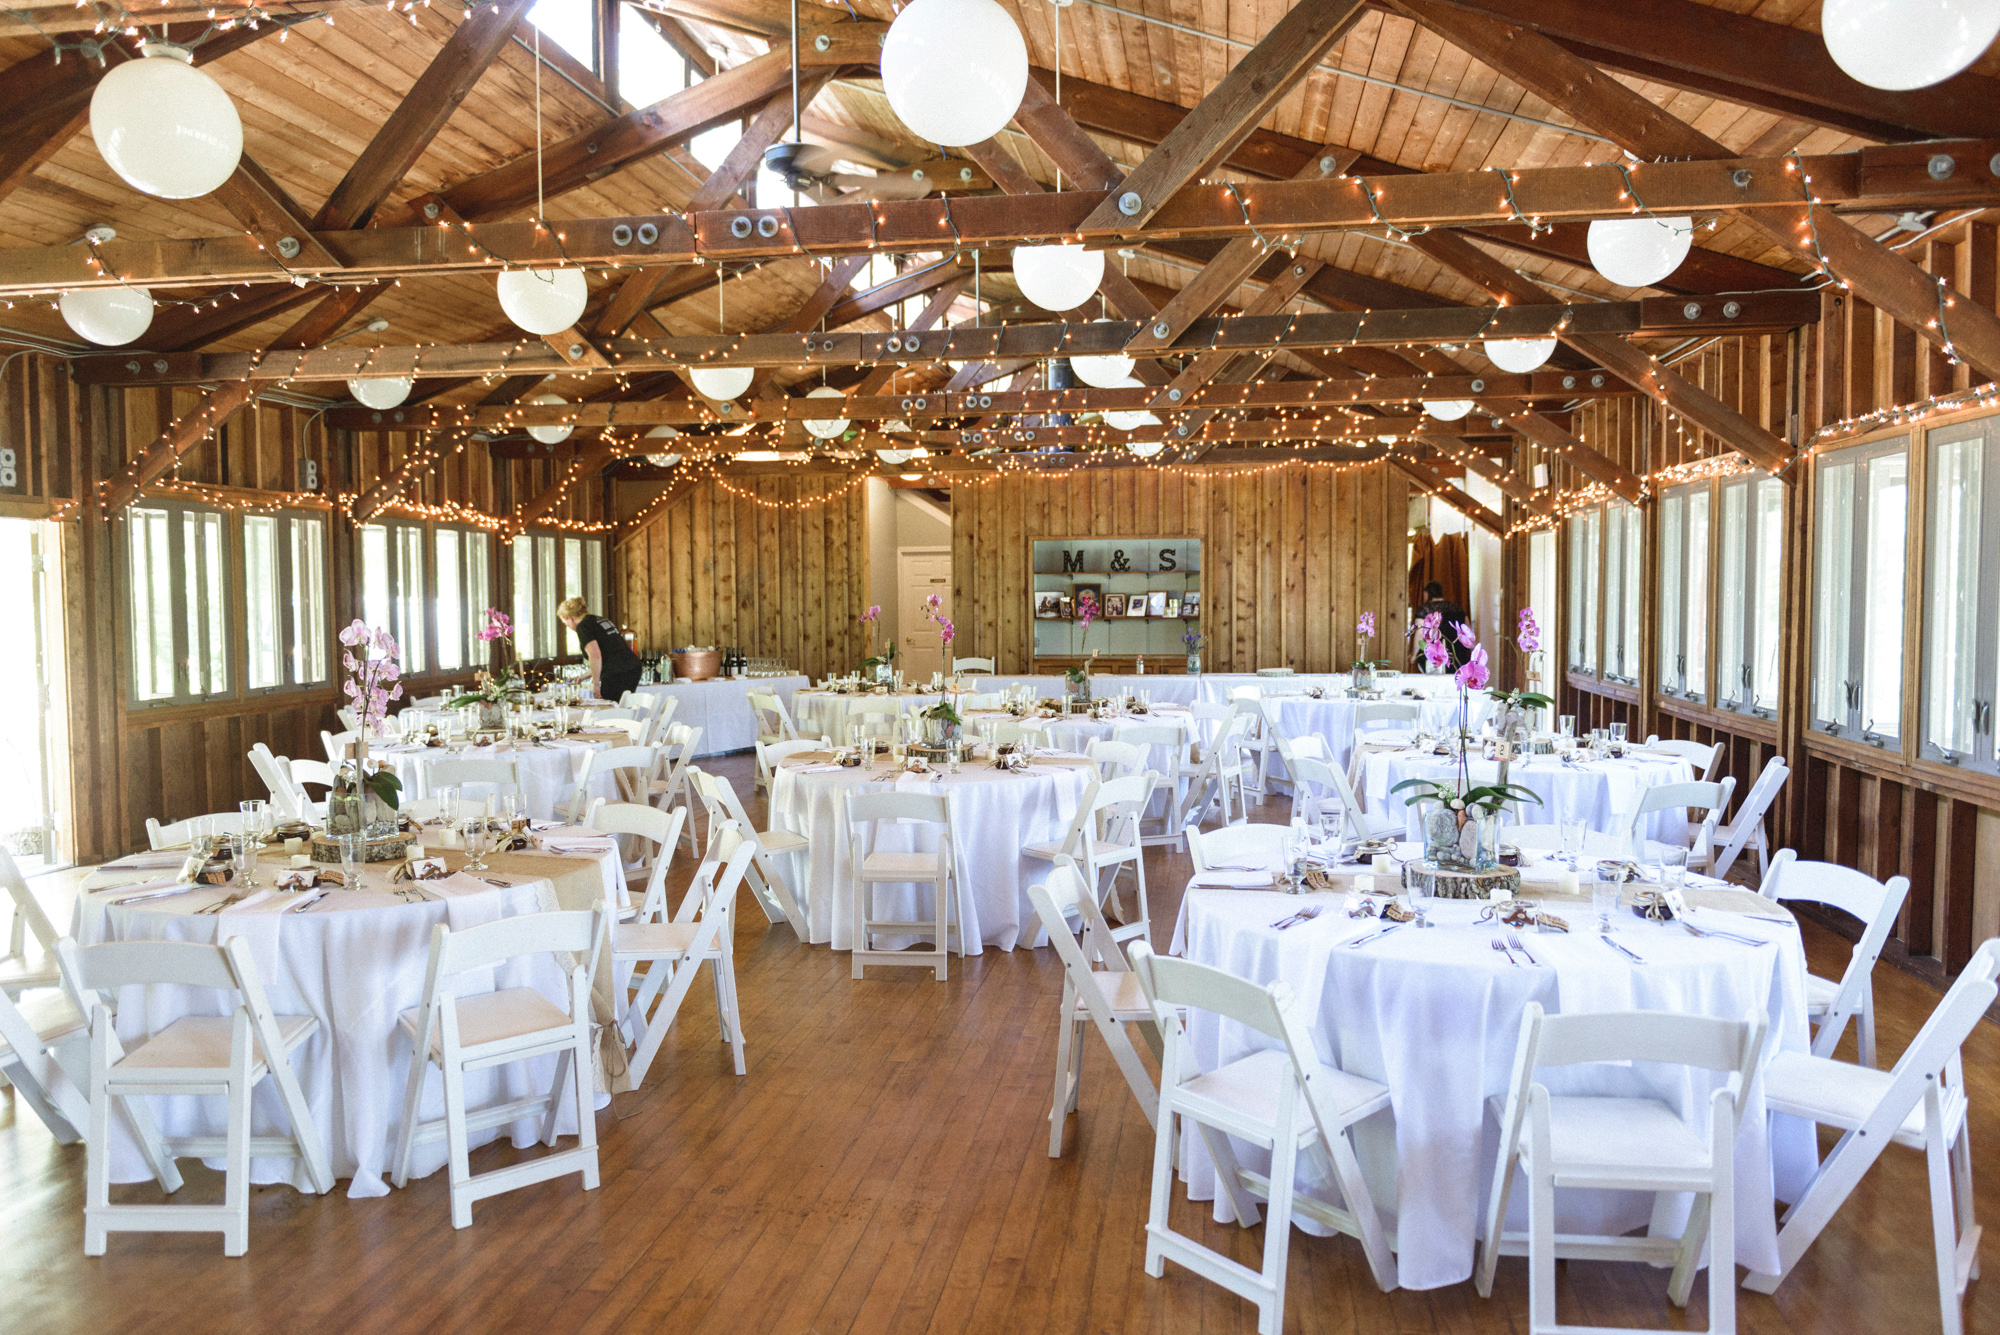 A wedding reception setup inside the mainstay at the Sailing Camp Park in Oak Bluffs martha's vineyard wedding venues photo by David Welch Photography